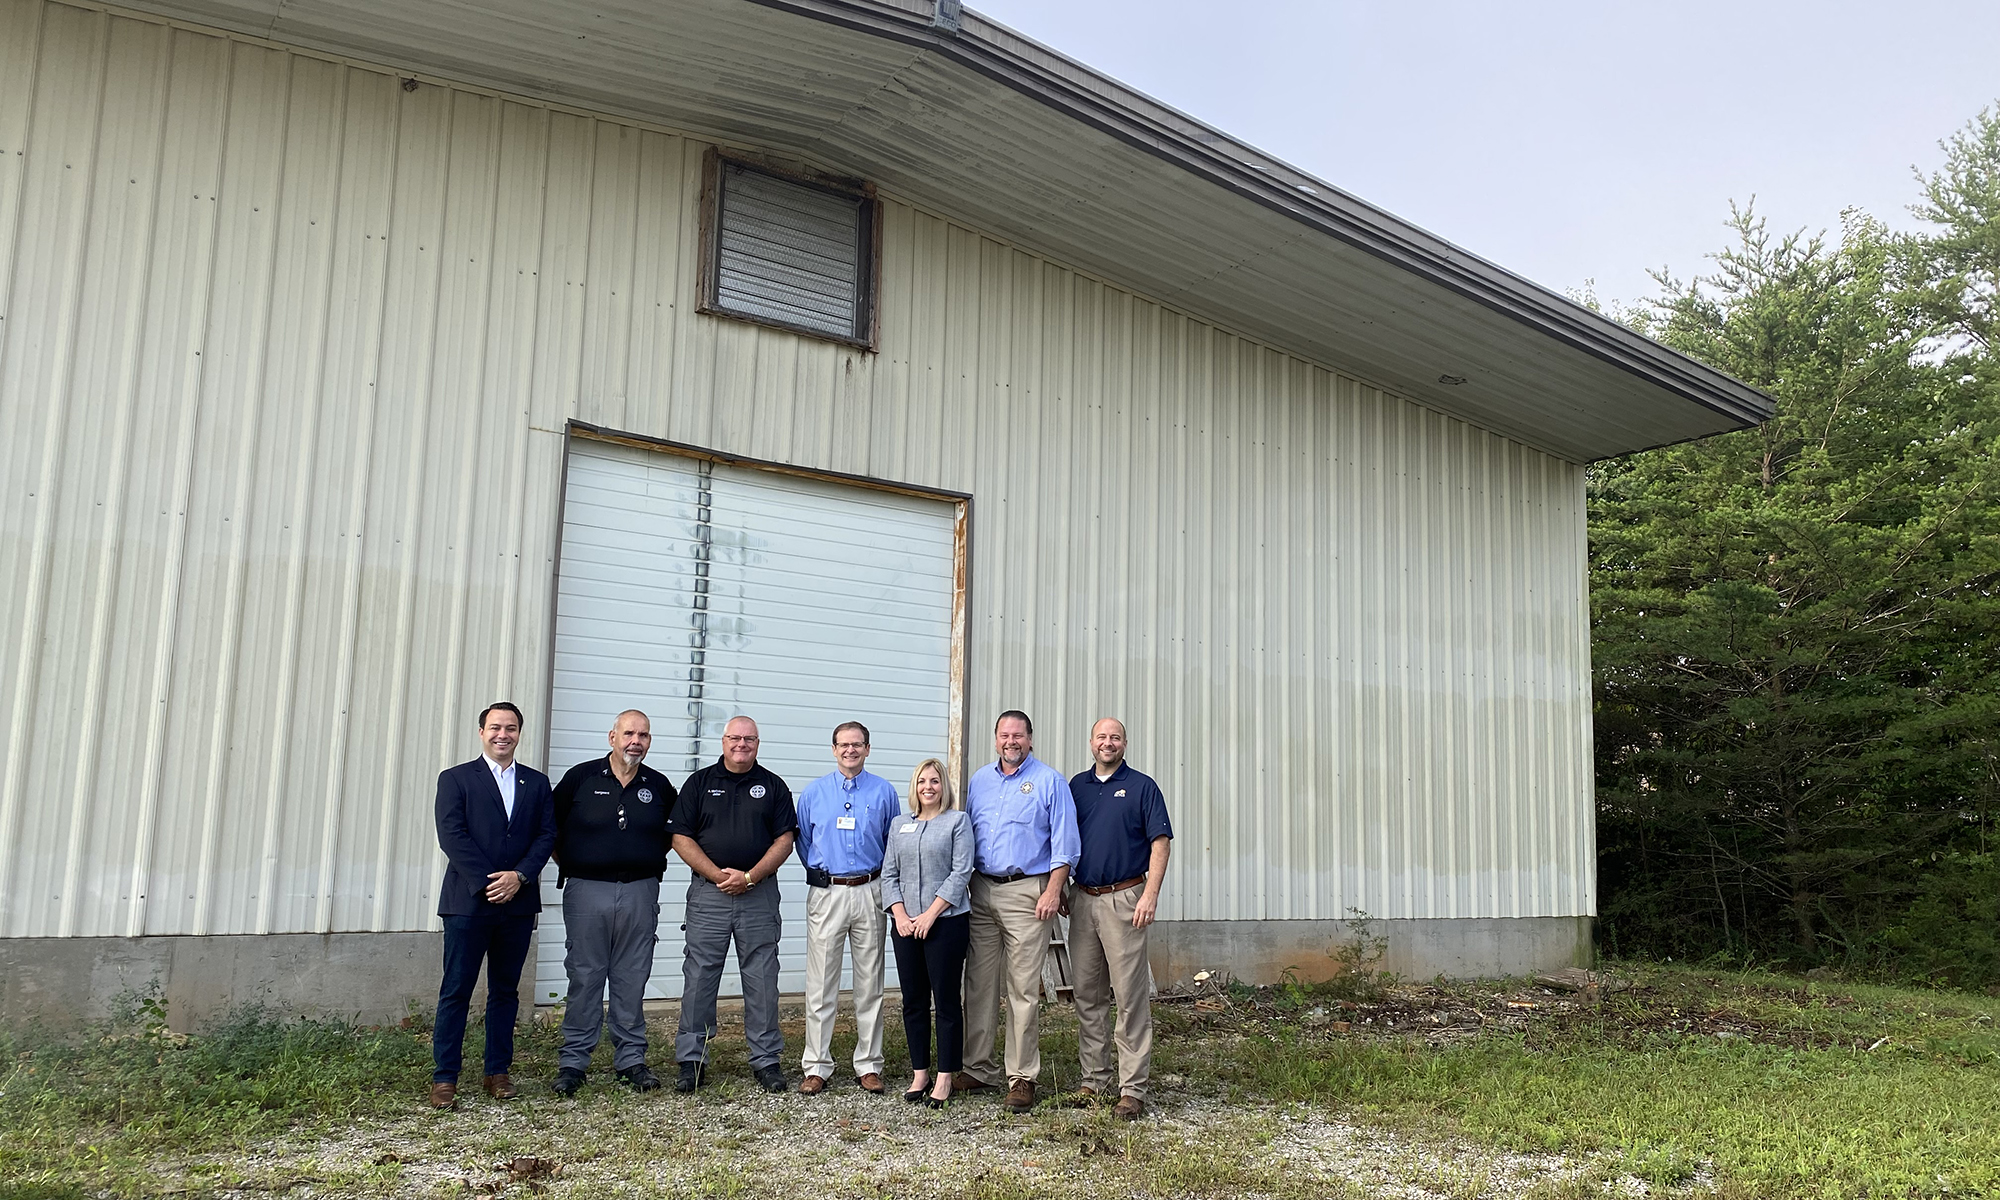 six people standing in front of warehouse